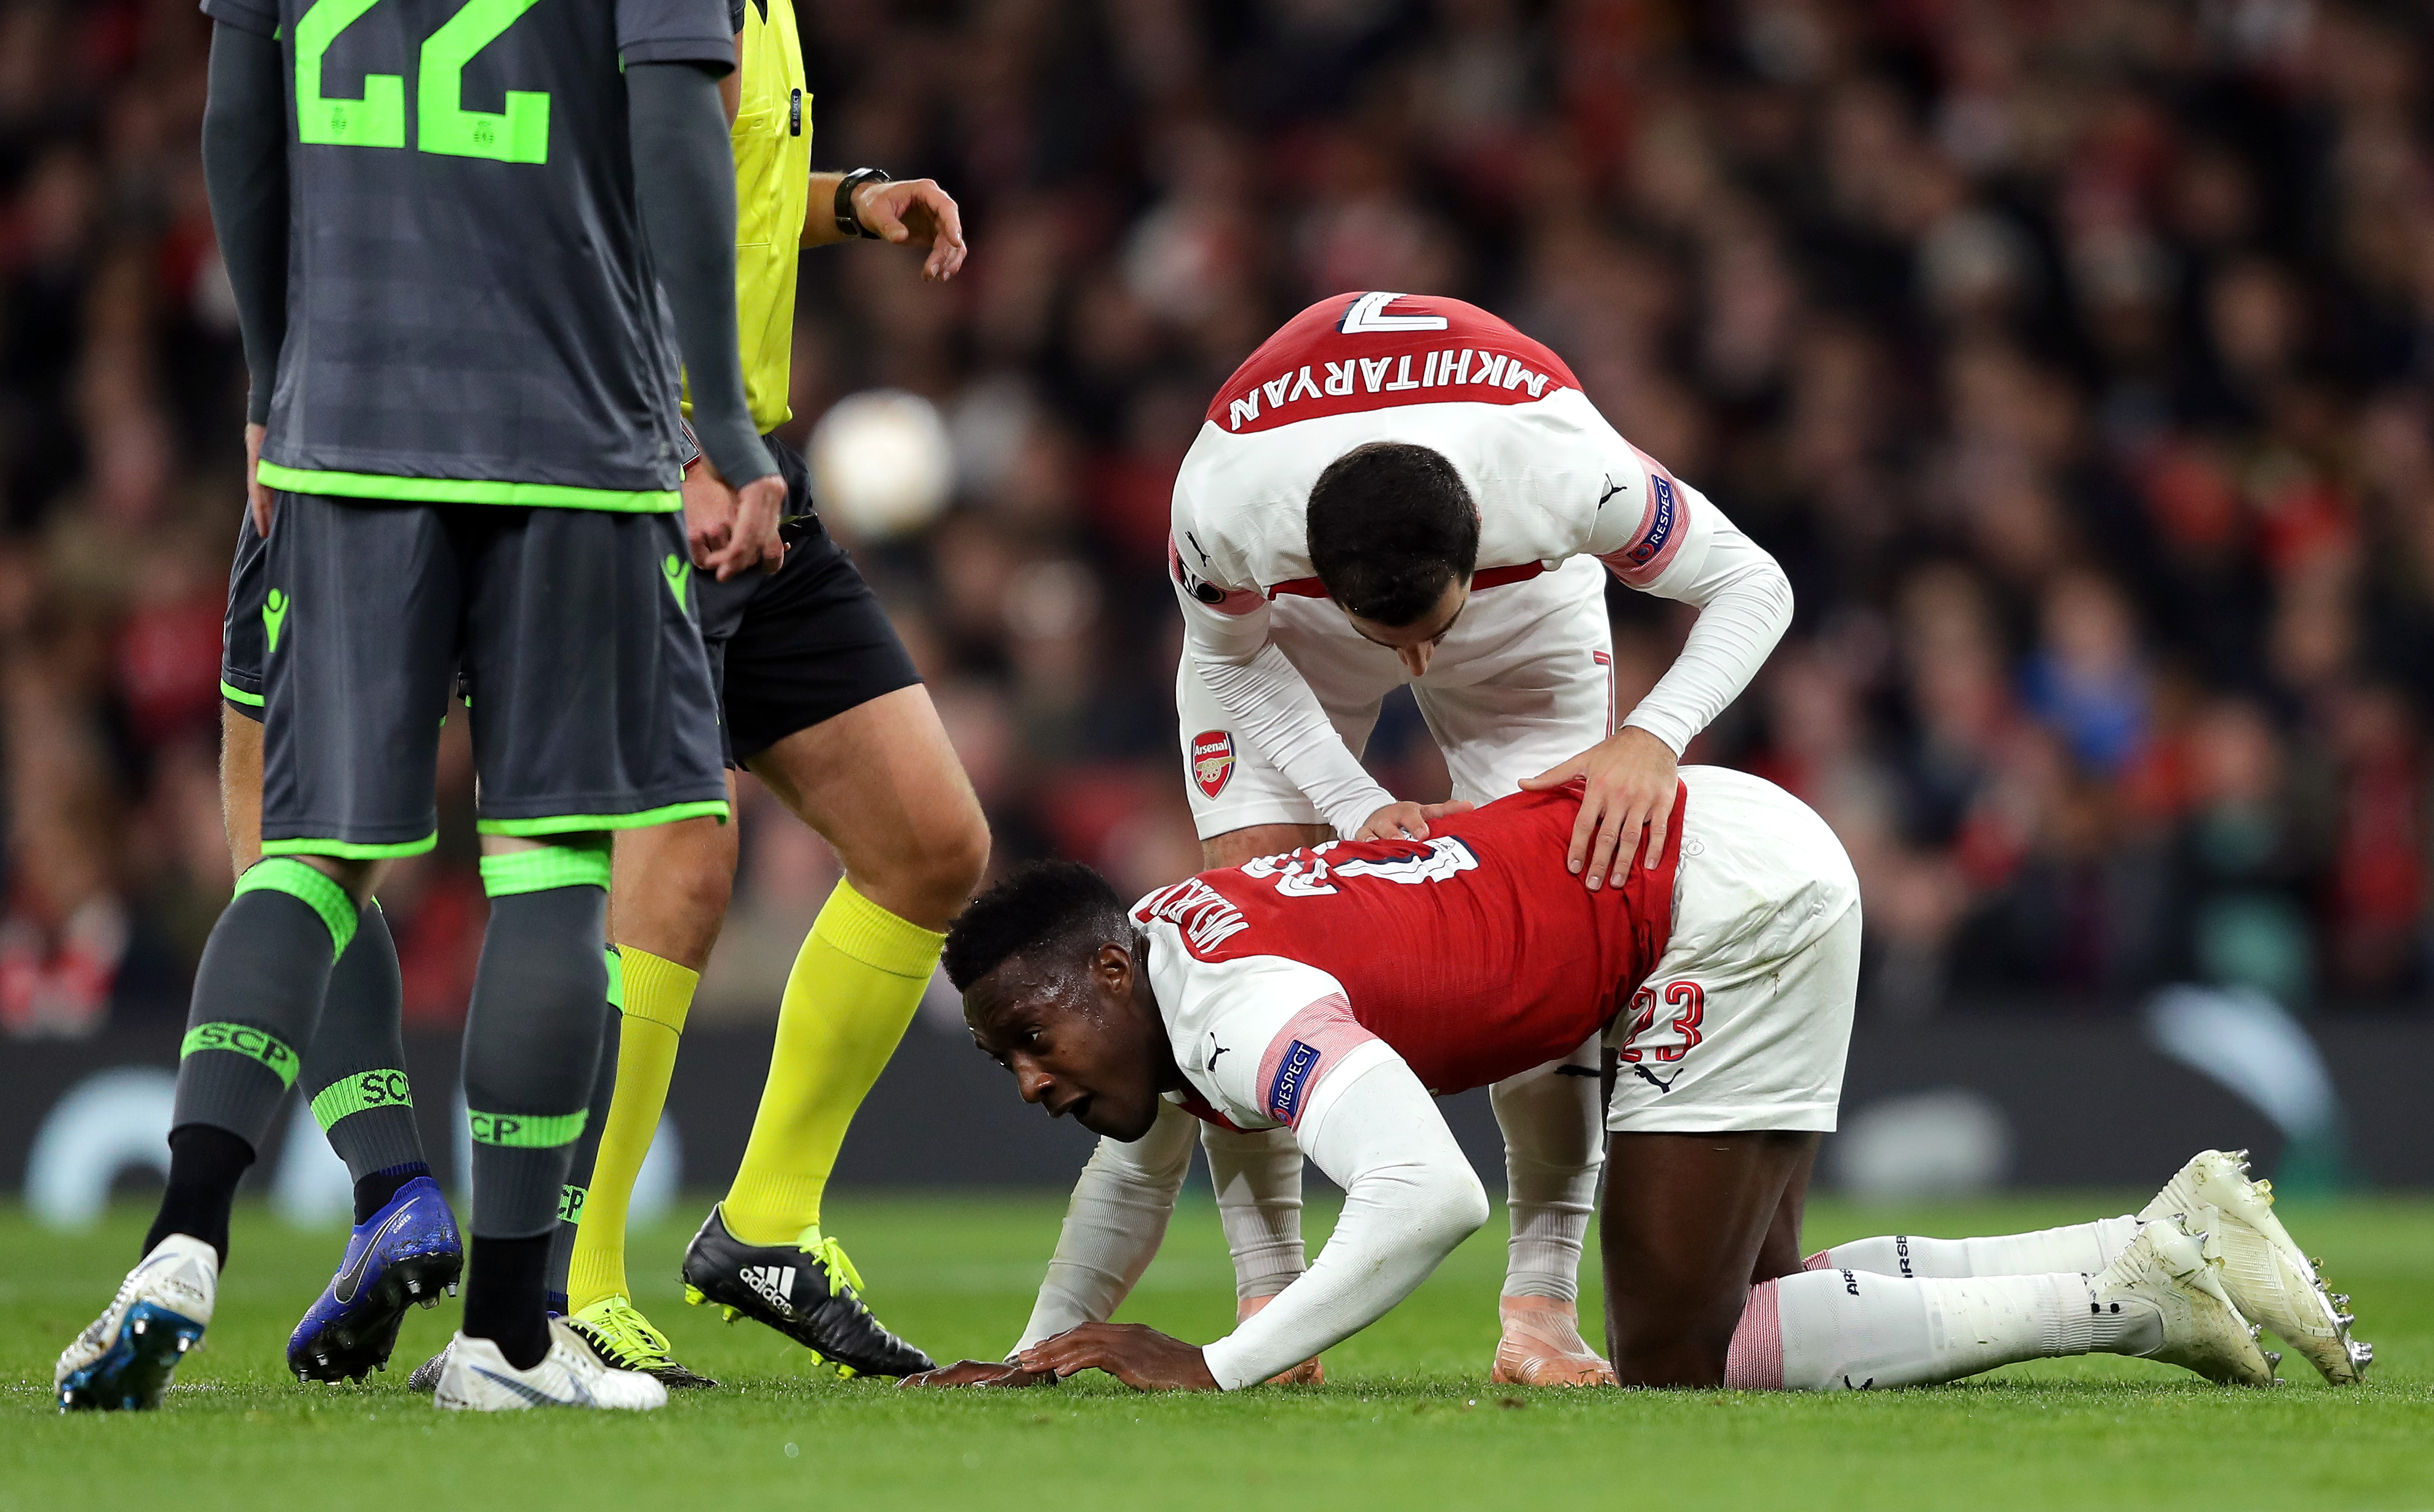 Welbeck's injury in November convinced Arsenal not to offer a new deal. (Photo courtesy: AFP/Getty)